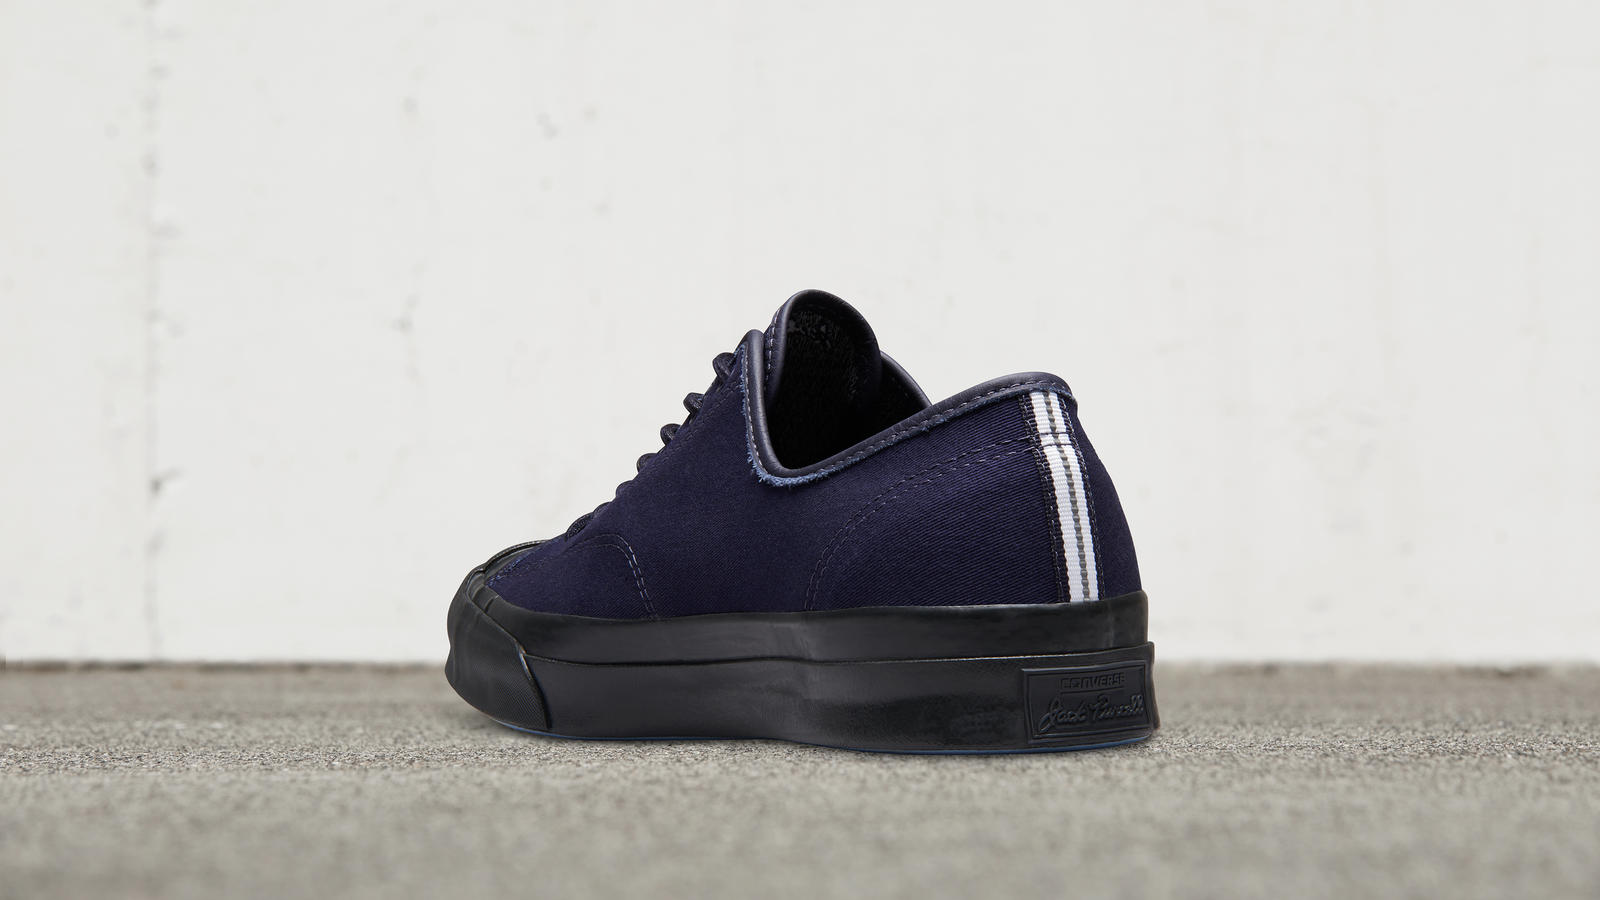 CONVERSE JACK PURCELL SIGNATURE SHIELD CANVAS LOW TOP